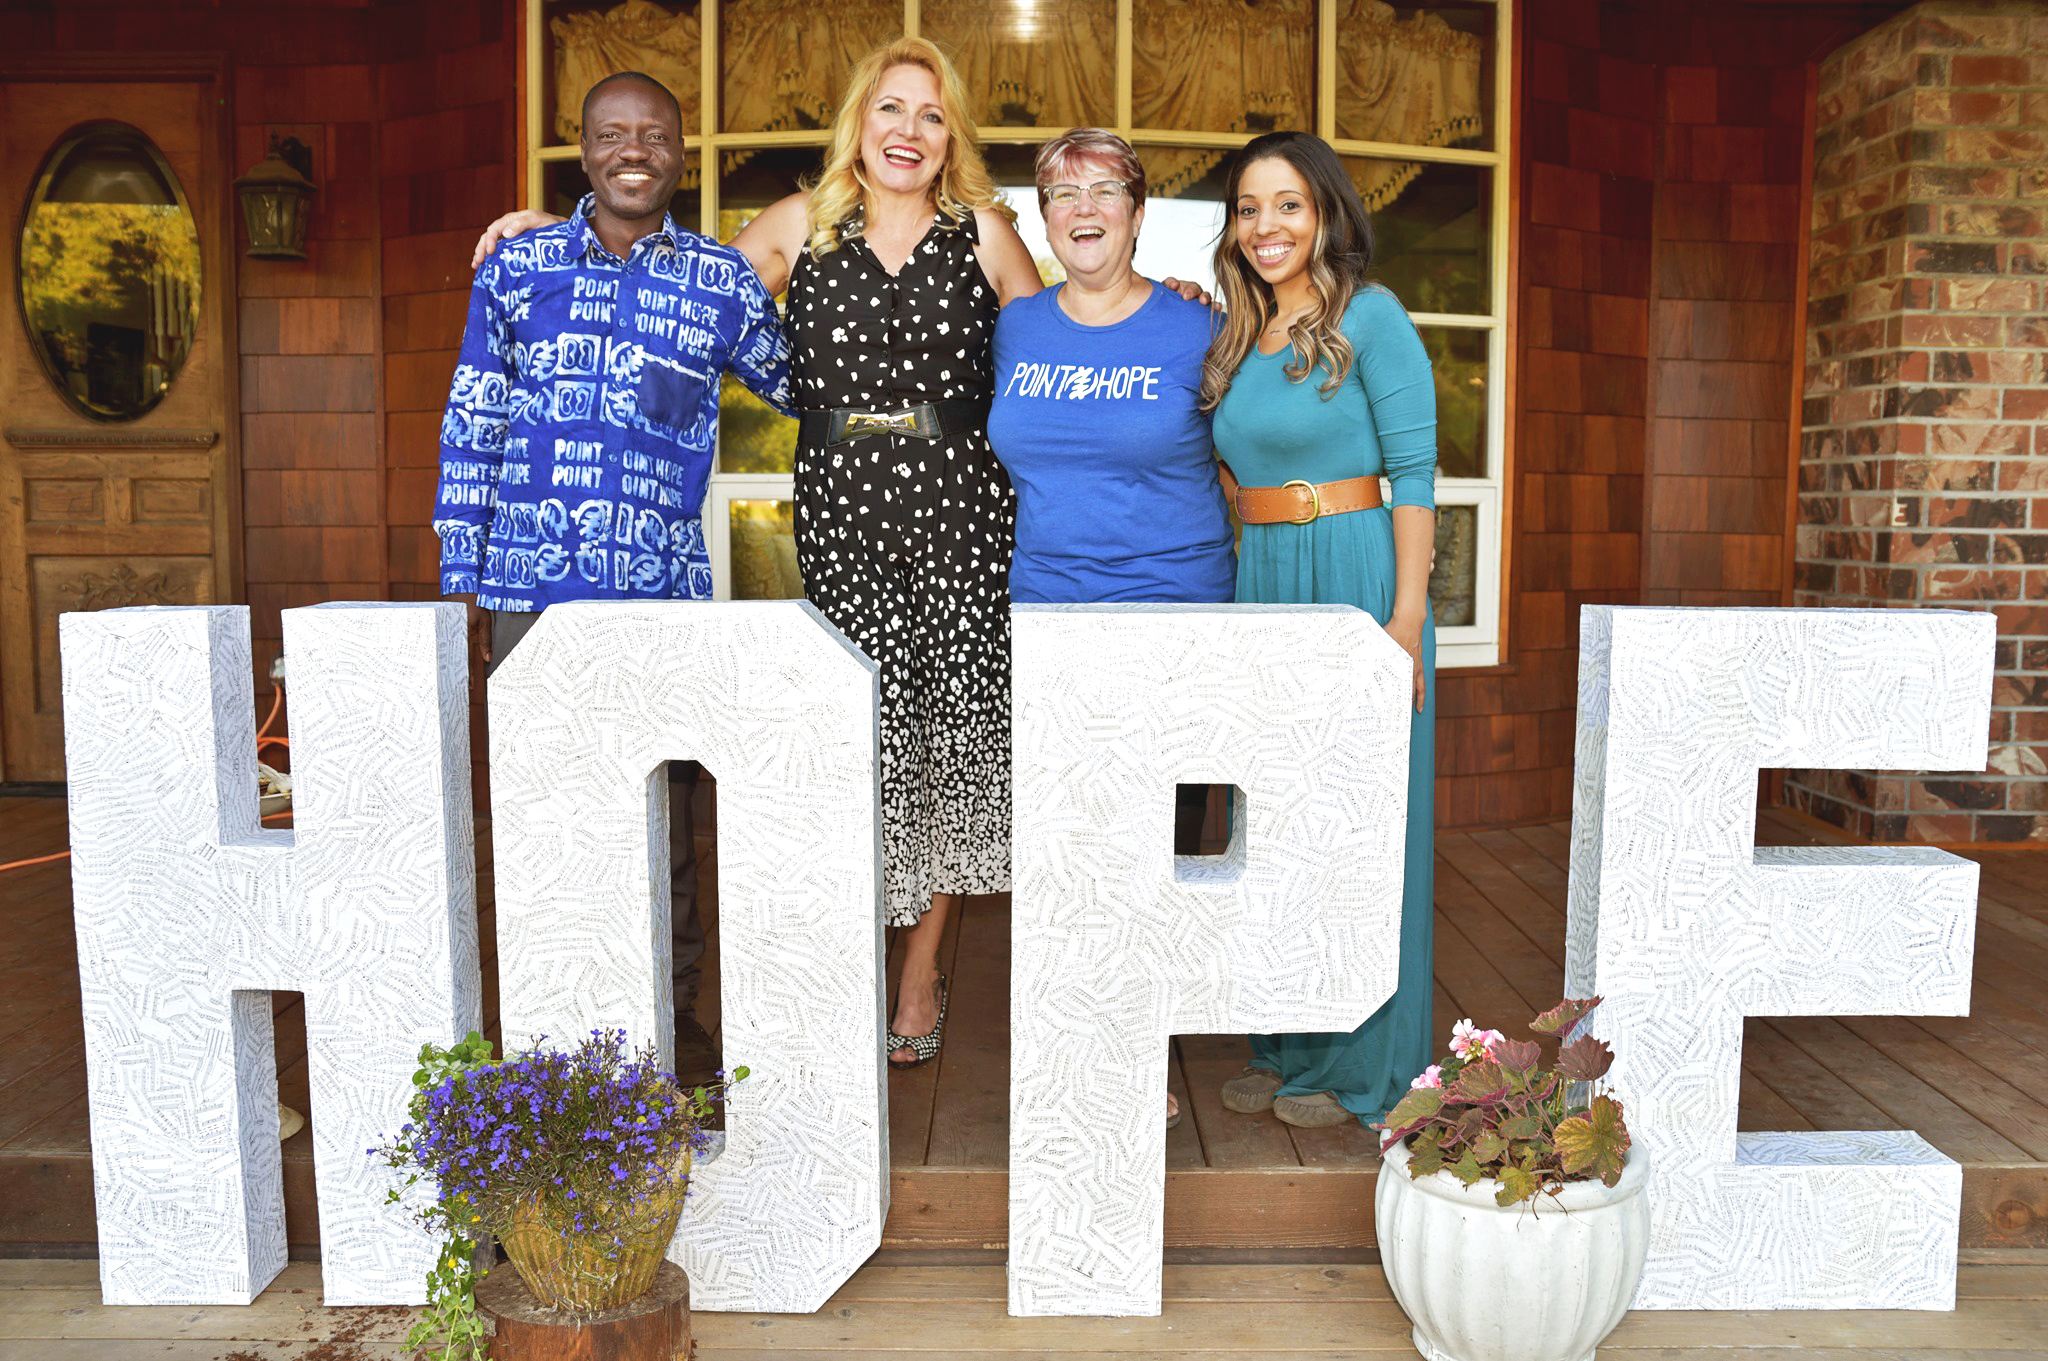 L-R: Adam Sandow (Point Hope Ghana In-Country Director,) Delilah (Founder of Point Hope,) Jan Haynes (Point Hope Executive Director,) Erin Haynes-Briggs (Point Hope Office Manager and Domestic Programs Coordinator)   Photo by Ron Finney / courtesy of Point Hope